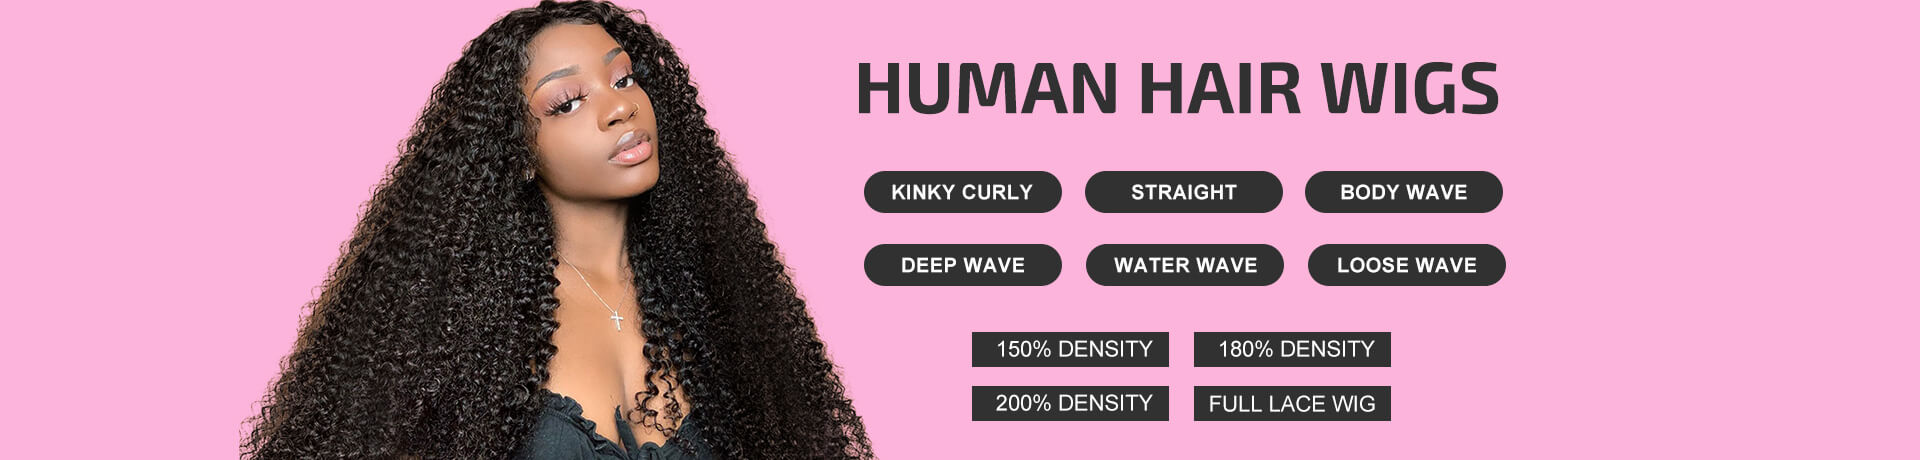 Shop Cheap Human Hair Wigs Online, Human Hair Lace Front Wigs, 100 Human Hair Wigs At a Affordable Price. 2019 New, 4000+ Styles, 80% Off‎, Free Shipping!